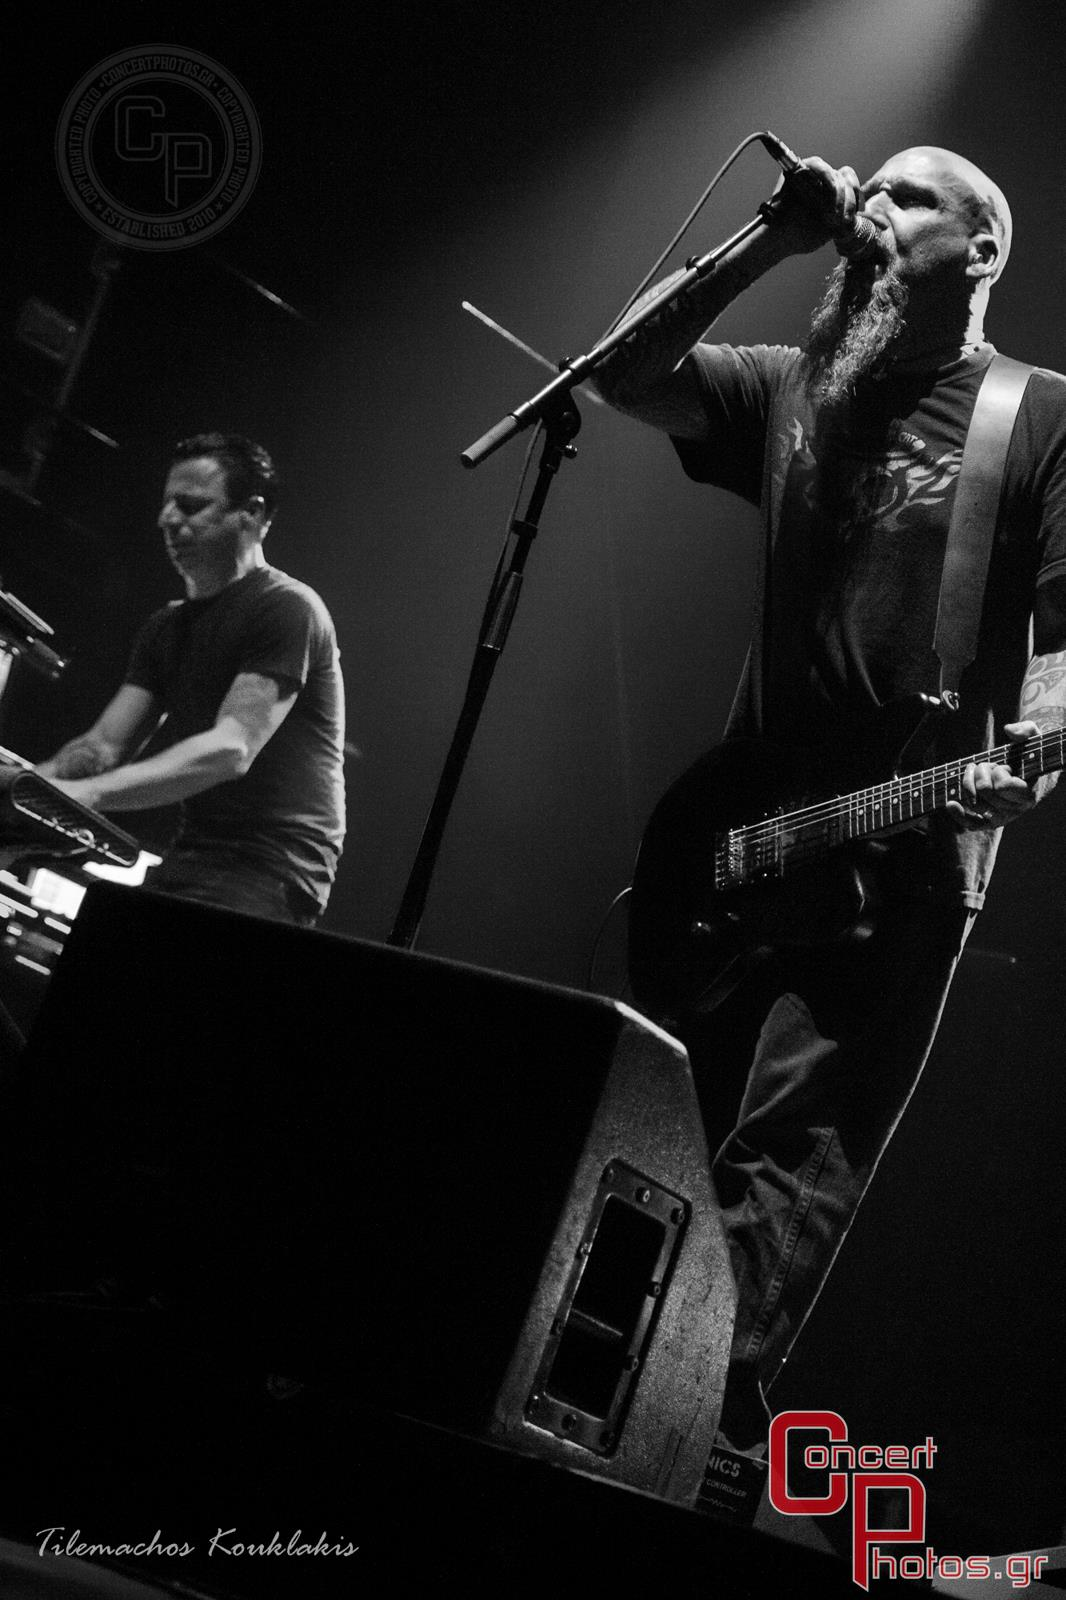 Neurosis-Neurosis photographer:  - concertphotos_20140707_23_56_35-5